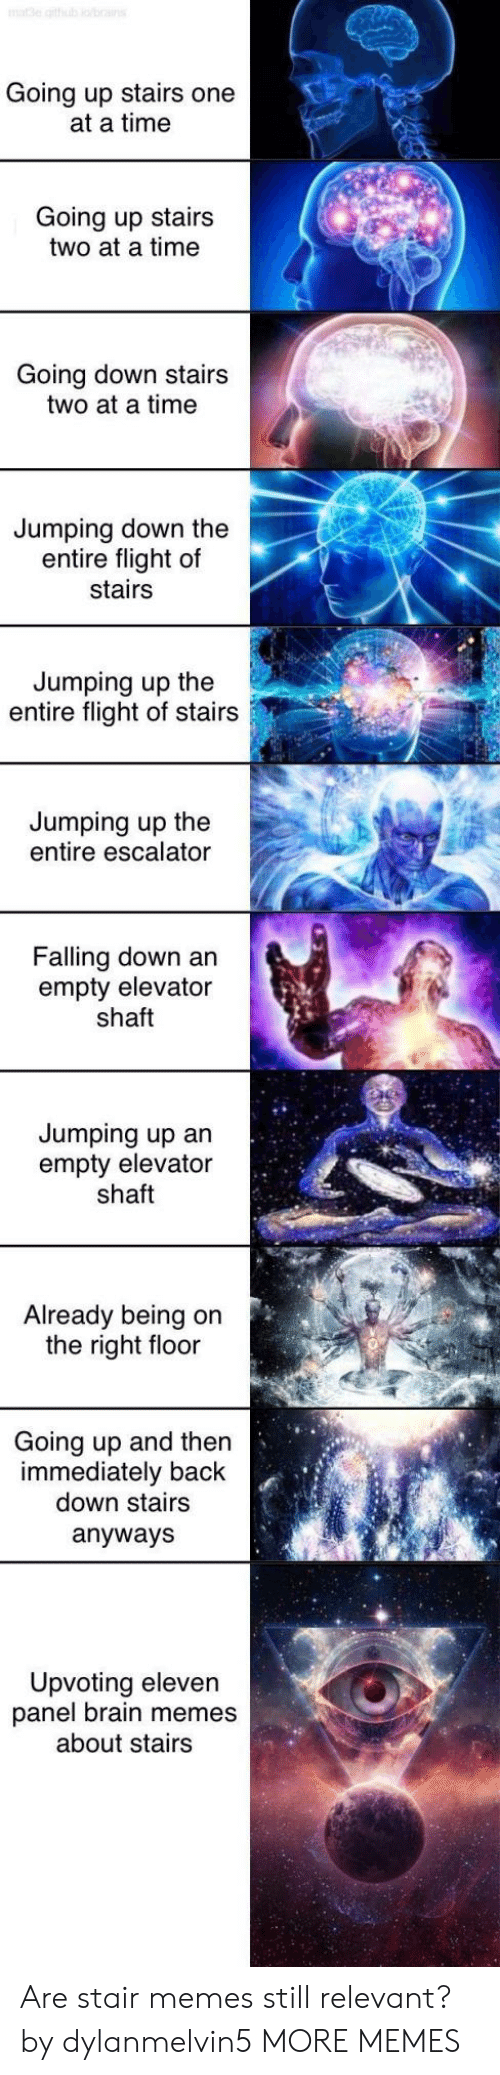 Dank, Memes, and Target: Going up stairs one  at a time  Going up stairs  two at a time  Going down stairs  two at a time  Jumping down the  entire flight of  stairs  Jumping up the  entire flight of stairs  Jumping up the  entire escalator  Falling down an  empty elevator  shaft  Jumping up an  empty elevator  shaft  Already being on  the right floor  Going up and then  immediately back  down stairs  anyways  Upvoting eleven  panel brain memes  about stairs Are stair memes still relevant? by dylanmelvin5 MORE MEMES